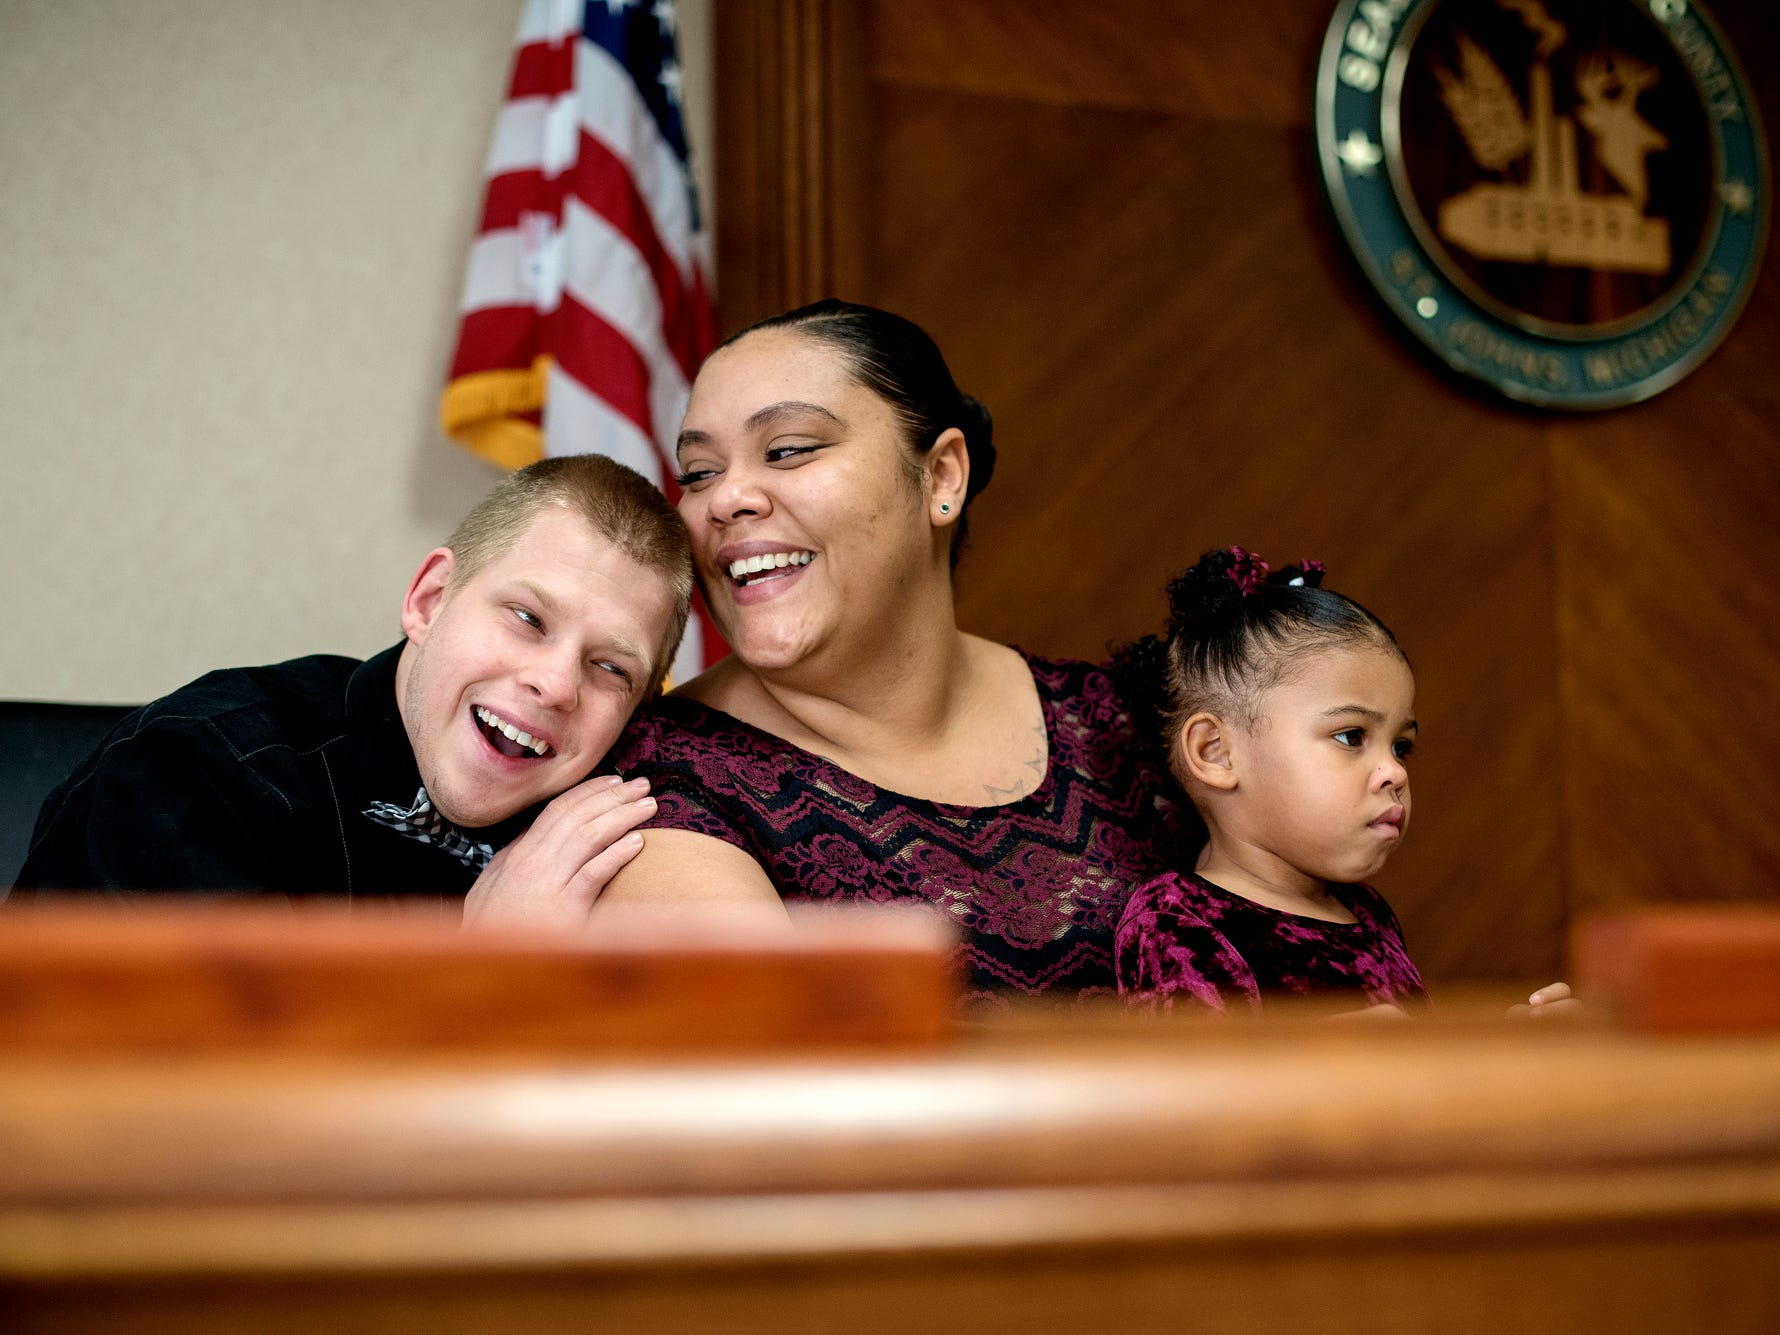 Bath resident Nicole Leggions, center, receives a hug from her adopted brother Paul, left, after Nicole finalized the adoption of Azaria, 3, right, and Aquan, 2, (not pictured) during a Michigan Adoption Day ceremony at the Clinton County Courthouse in St. Johns. Four families finalized the adoptions of six children.